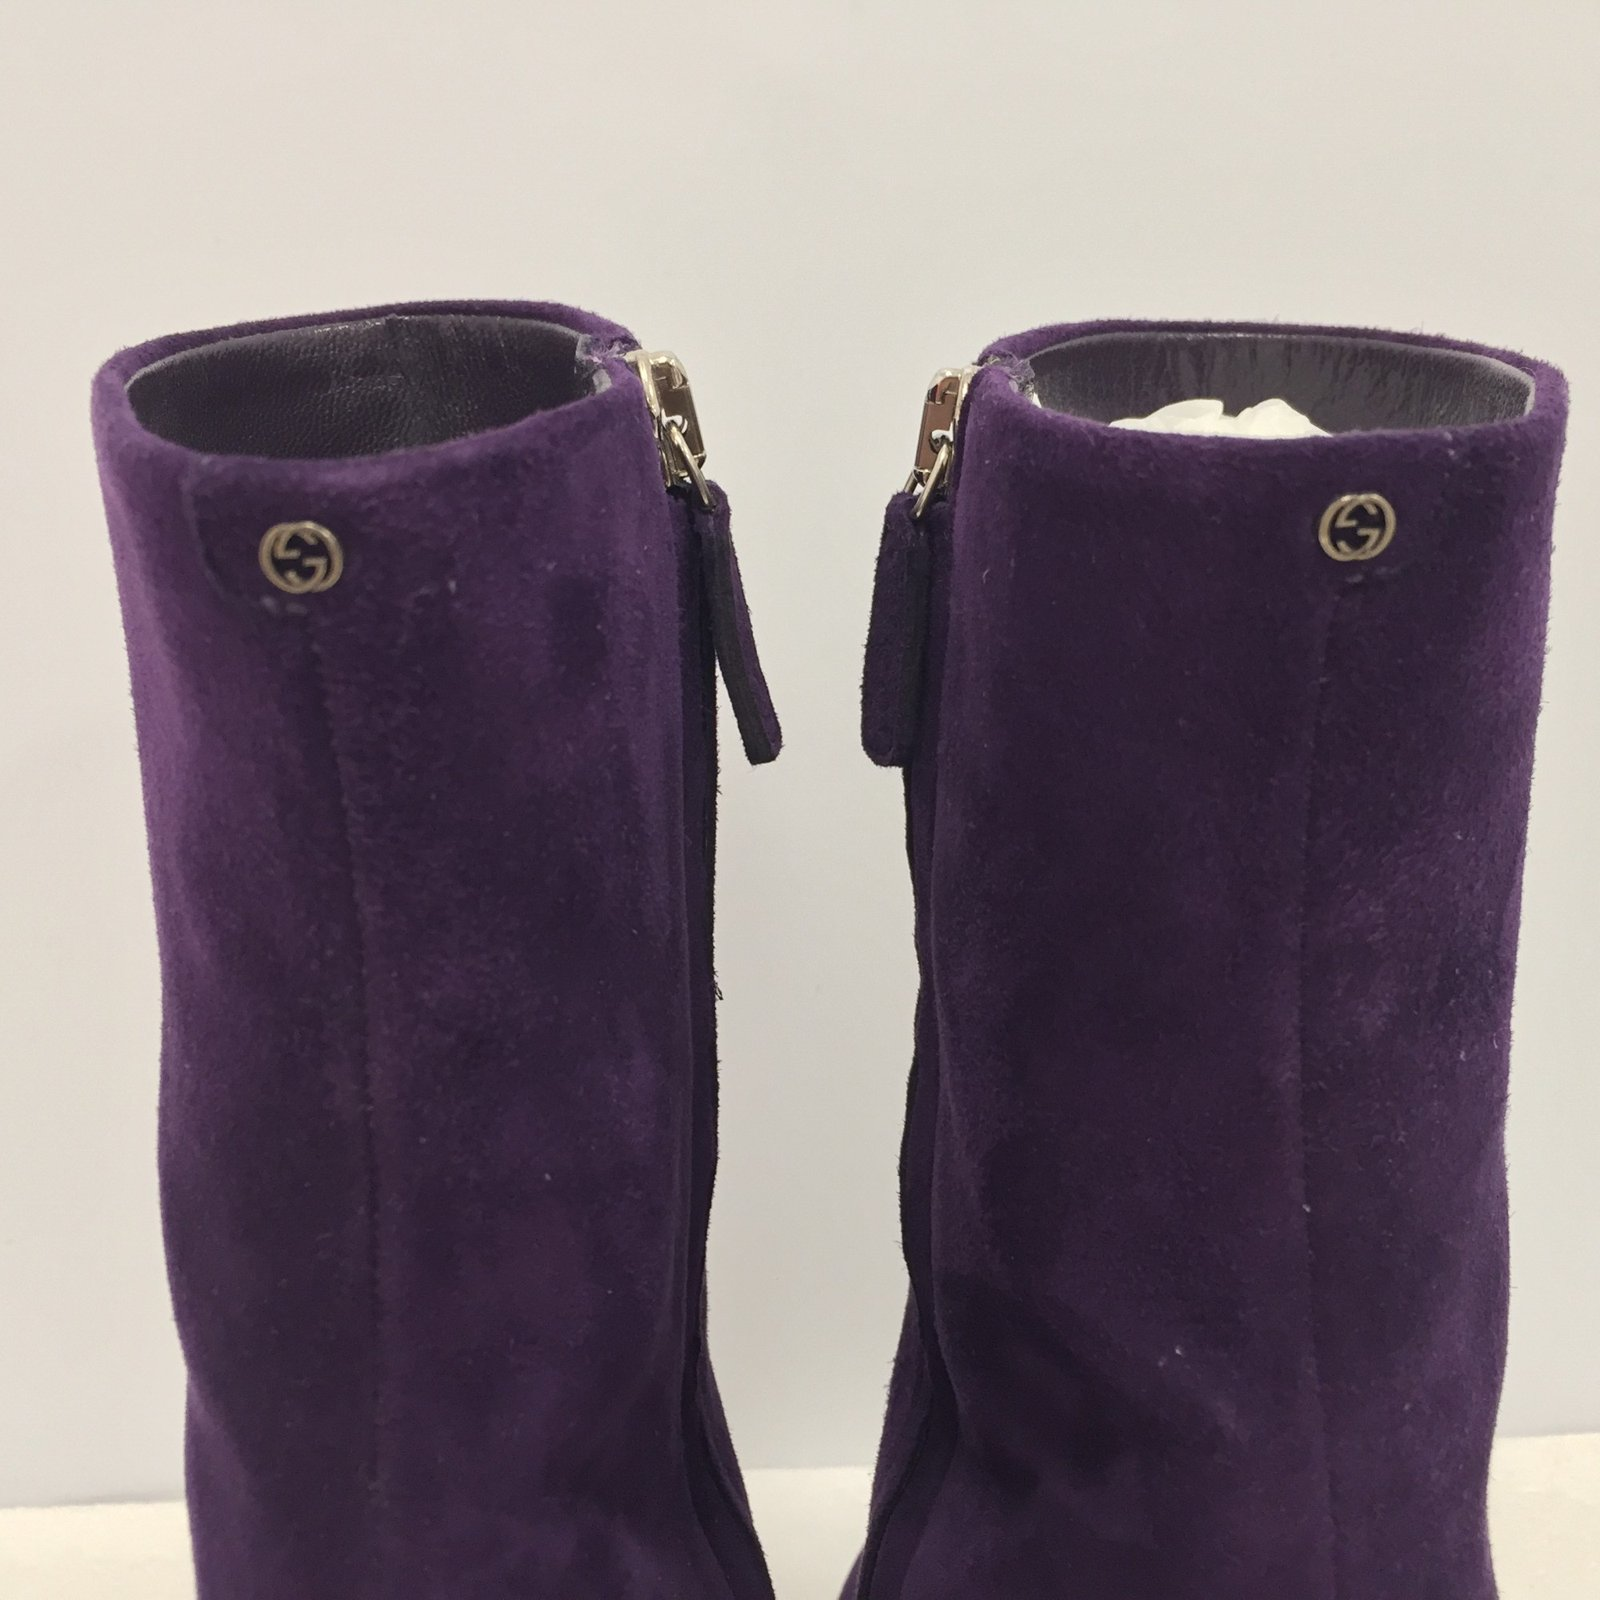 9f9ca49067c9 Facebook · Pin This. Gucci Ankle Boots Ankle Boots Suede Purple ref.84166